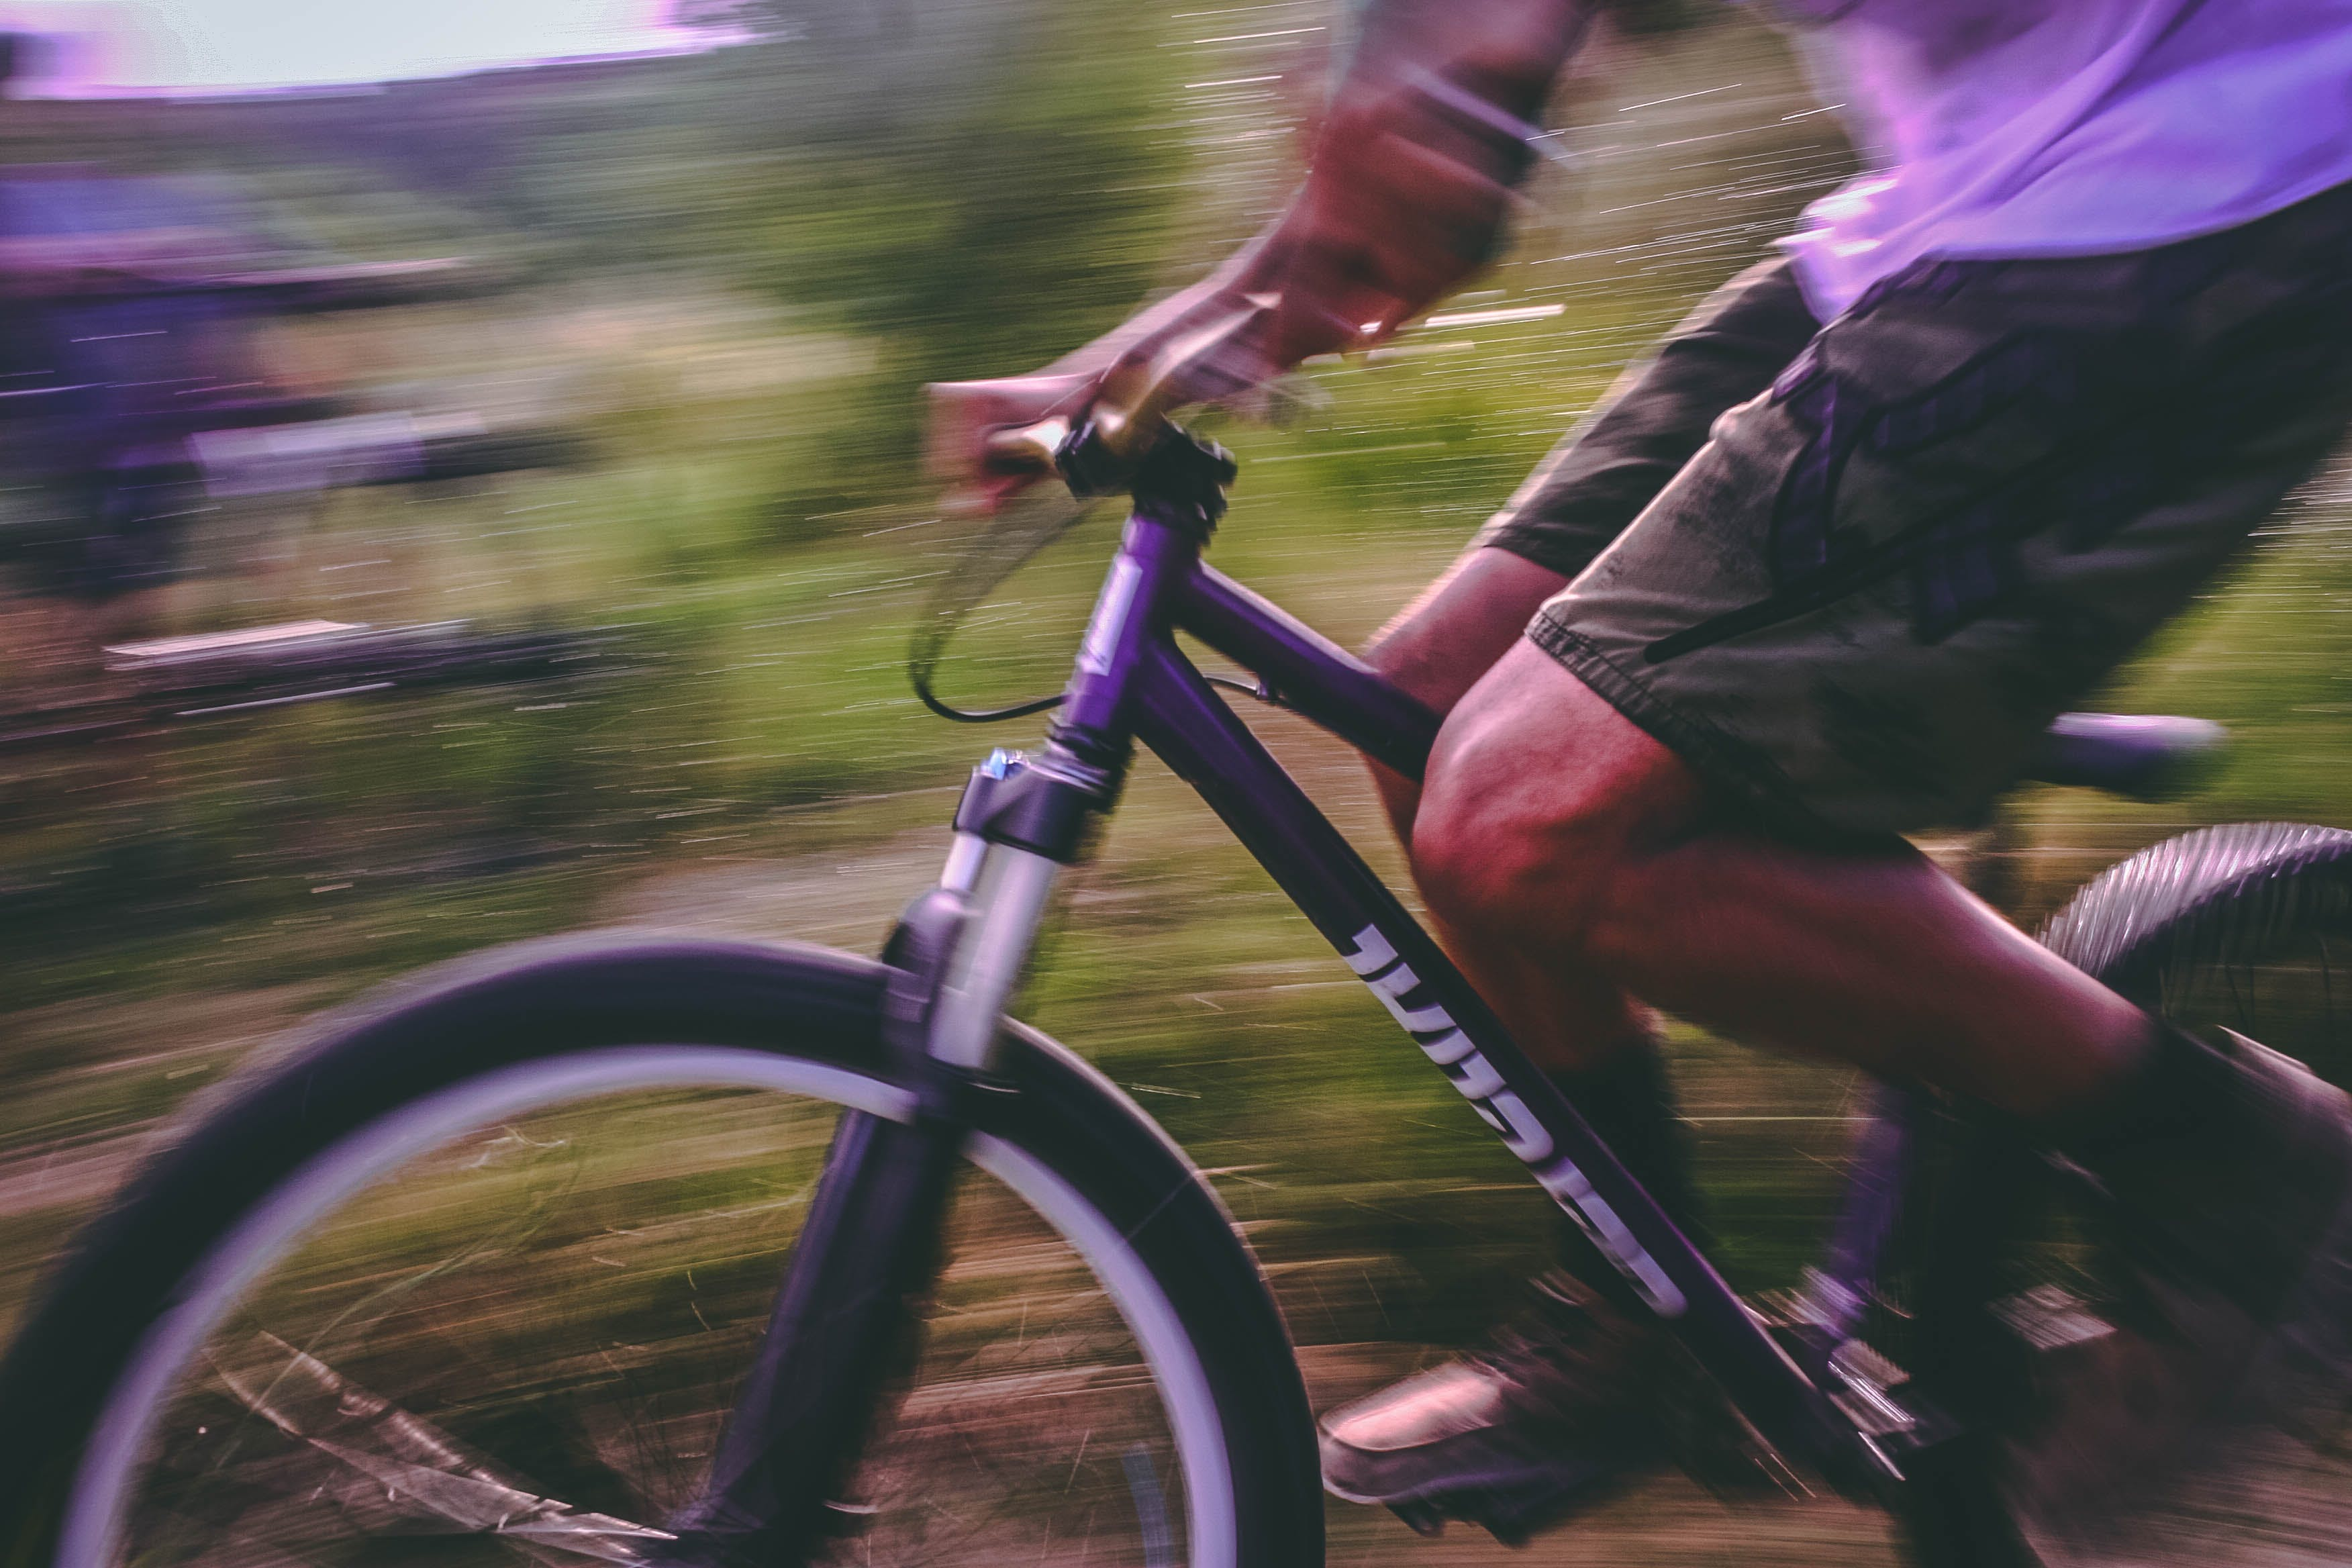 Time Lapse Photo Of Man Riding On Bicycle